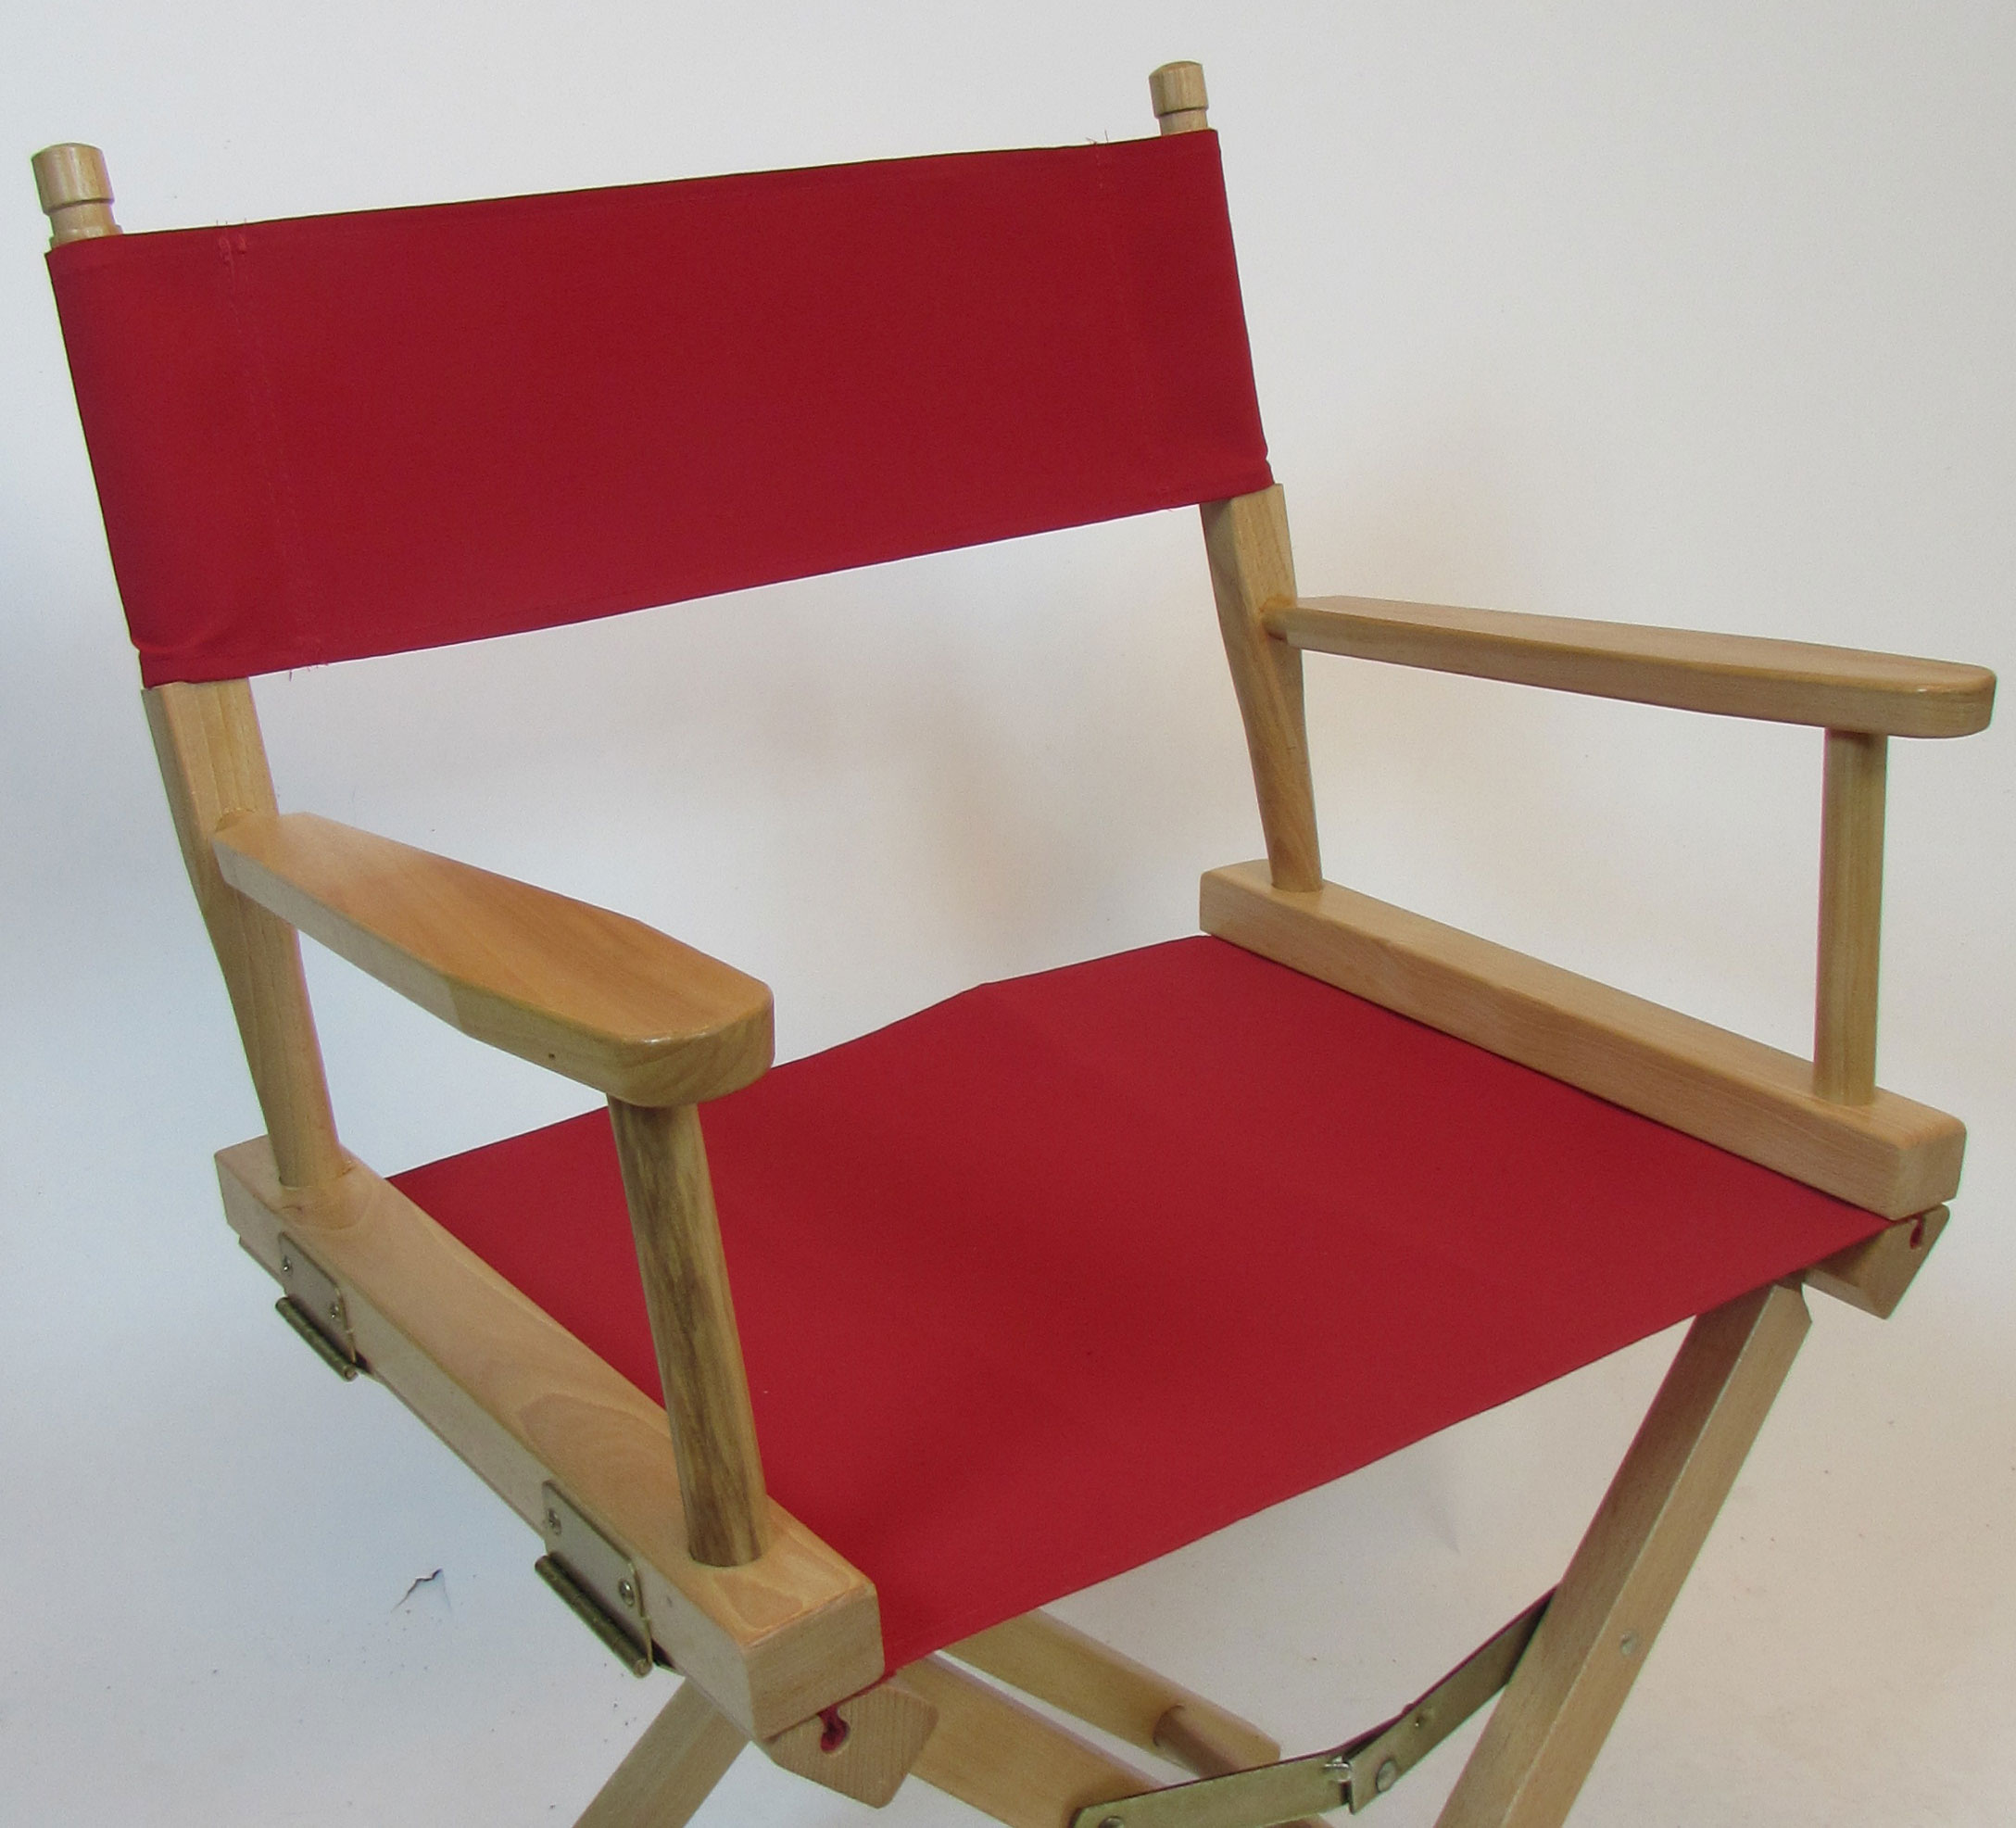 Director Chair Replacement Canvas Sunbrellaï½ Directors Chair Replacement Cover Flat Stick